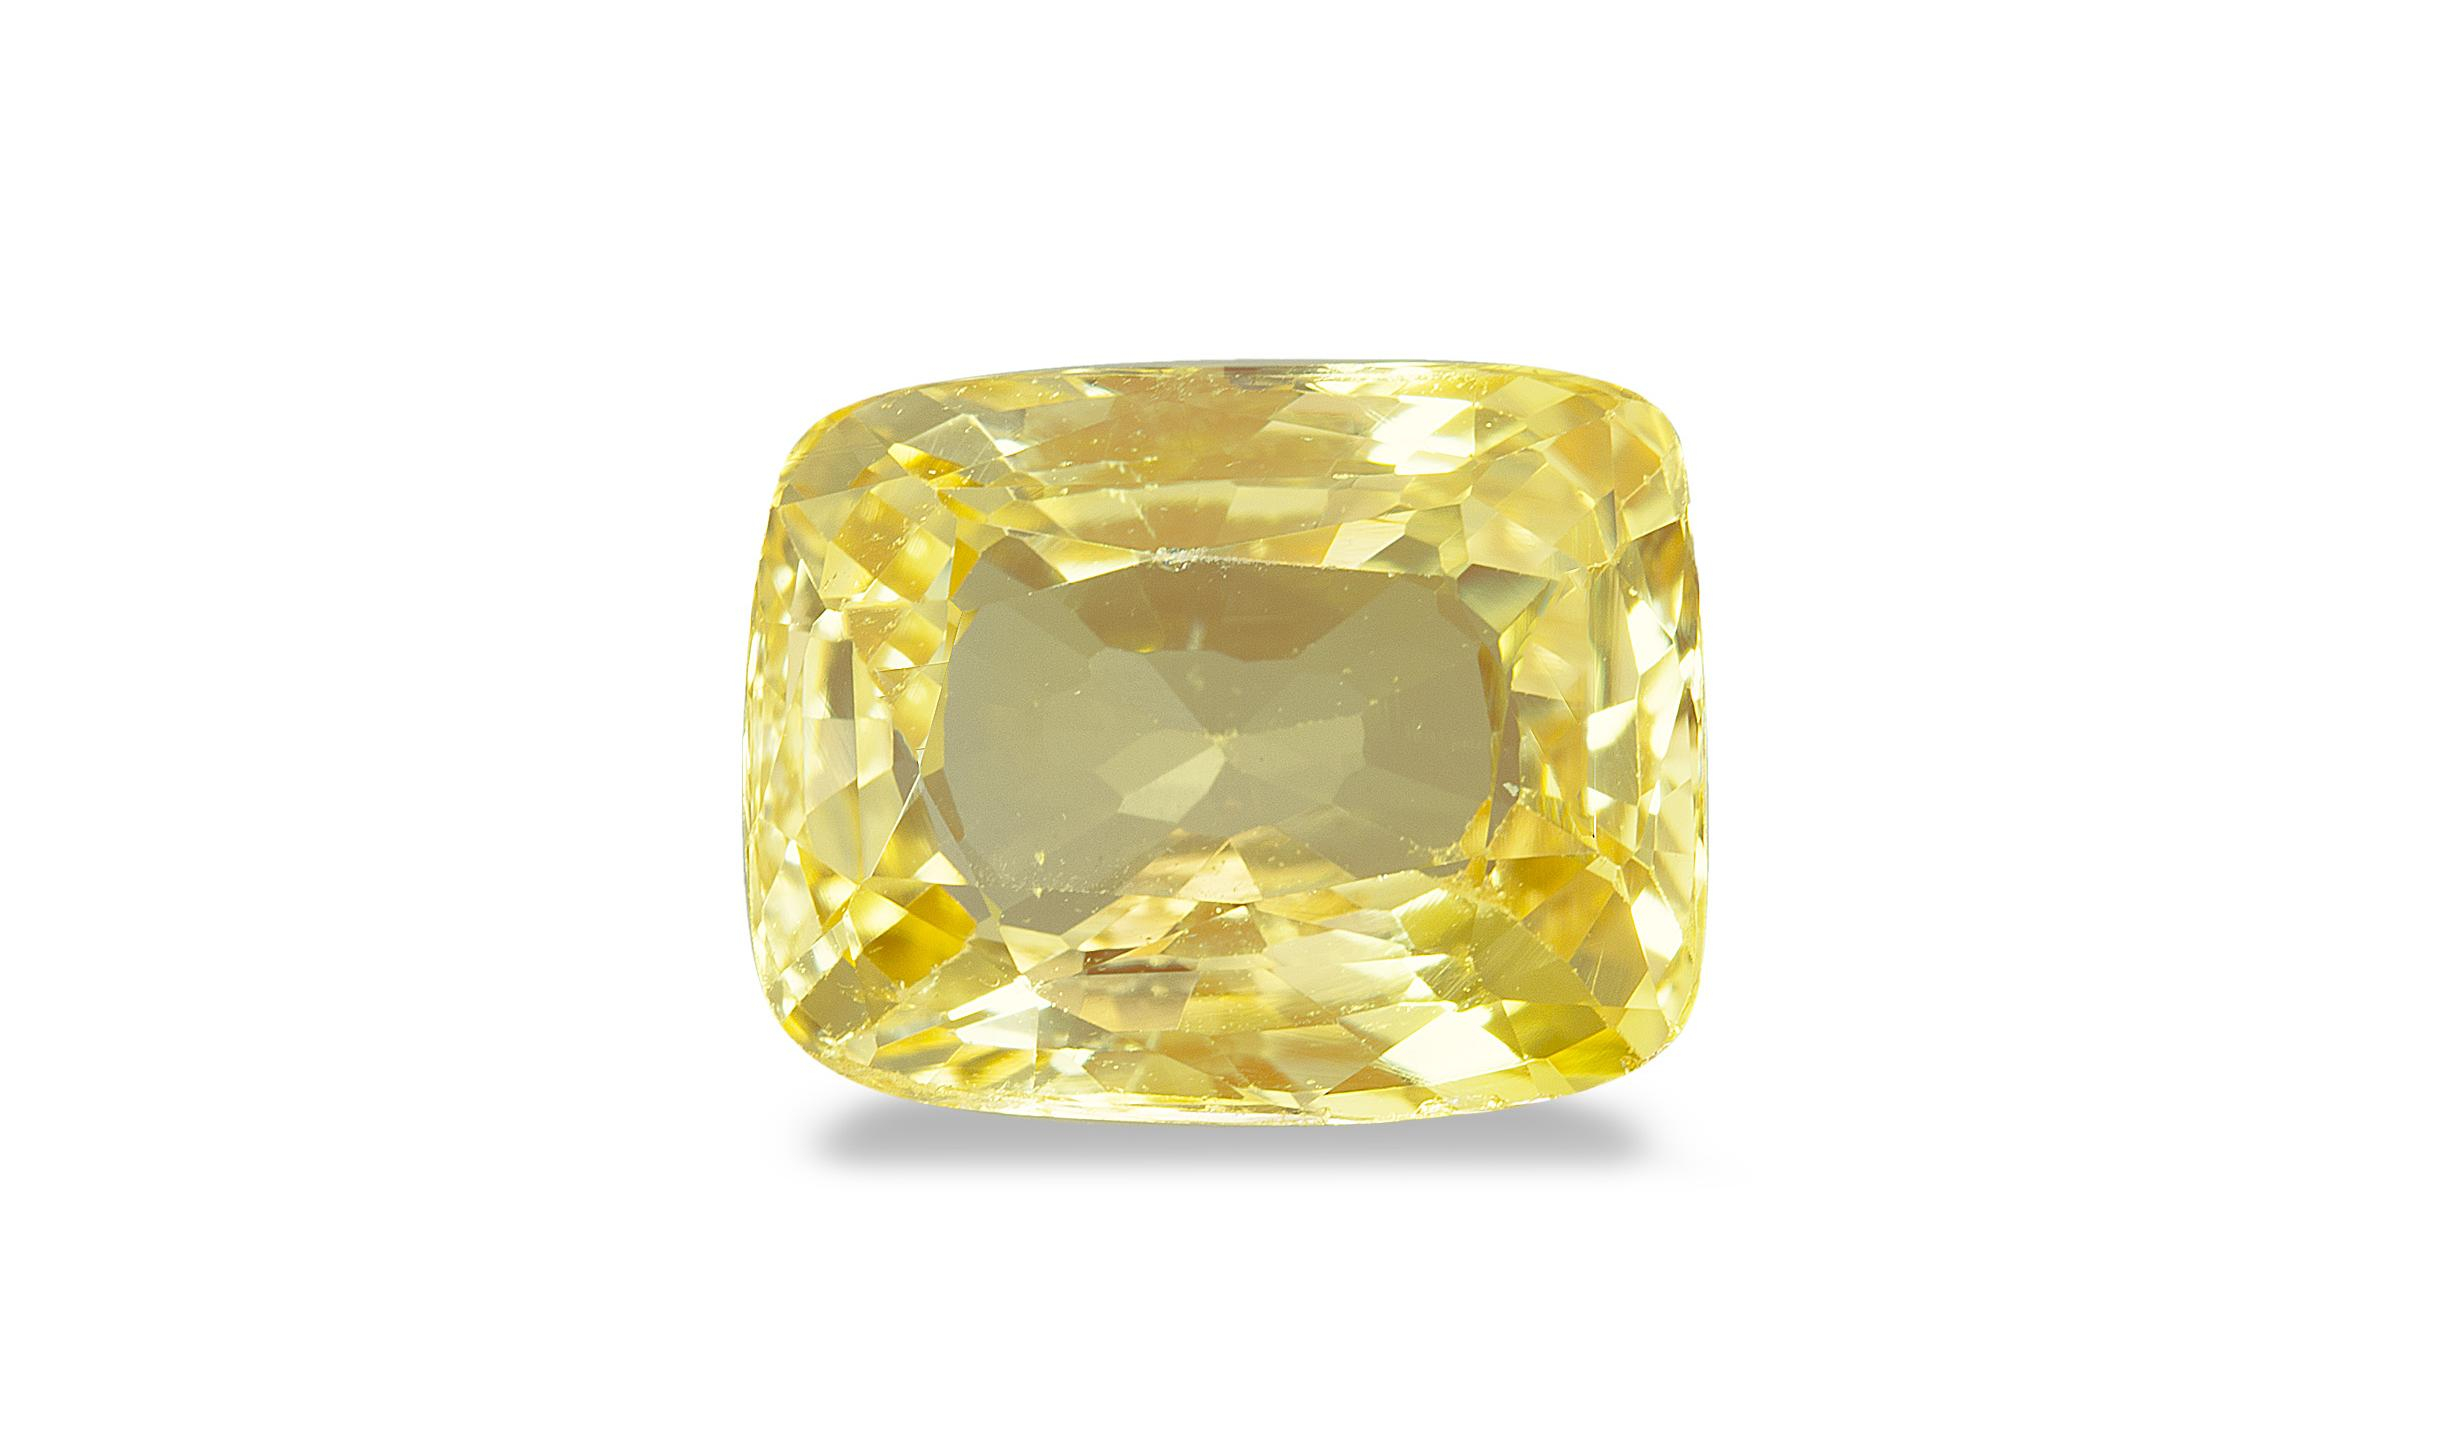 Figure 1. The 4+-carat yellow stone that is the subject of this report. Photo: Maitree Petchloun